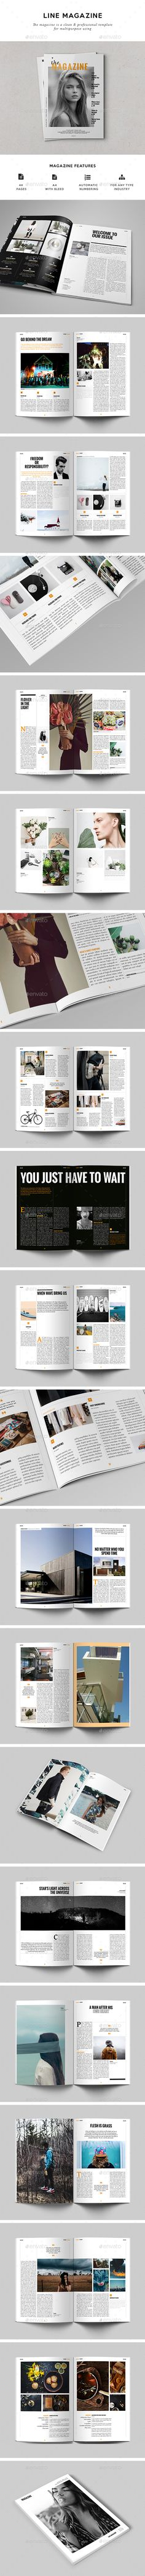 Line Magazine — InDesign INDD #cs6 #graphic design • Available here → https://graphicriver.net/item/line-magazine/15888140?ref=pxcr